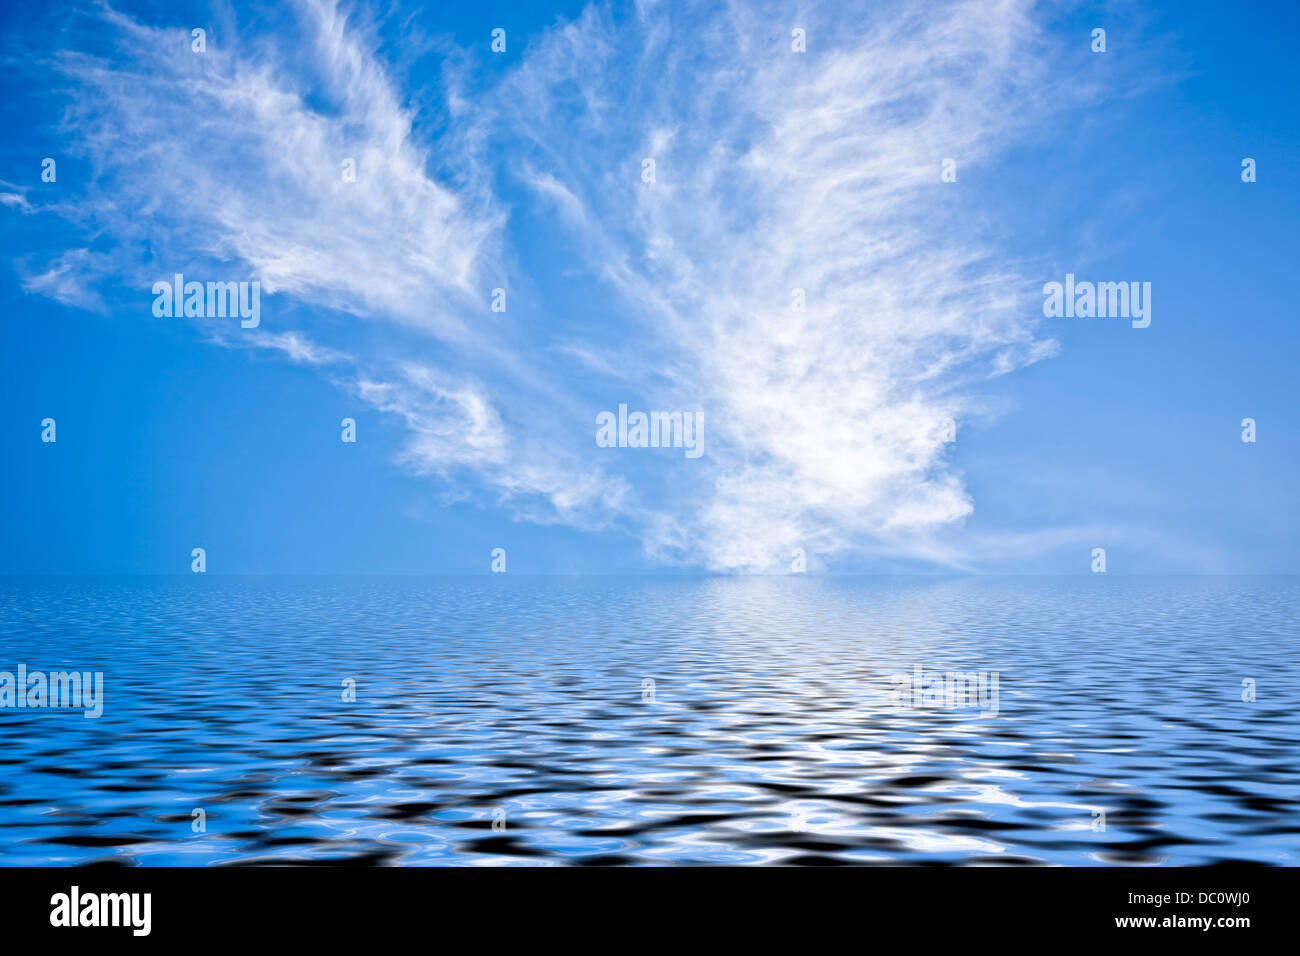 White and gray clouds in blue sky. - Stock Image